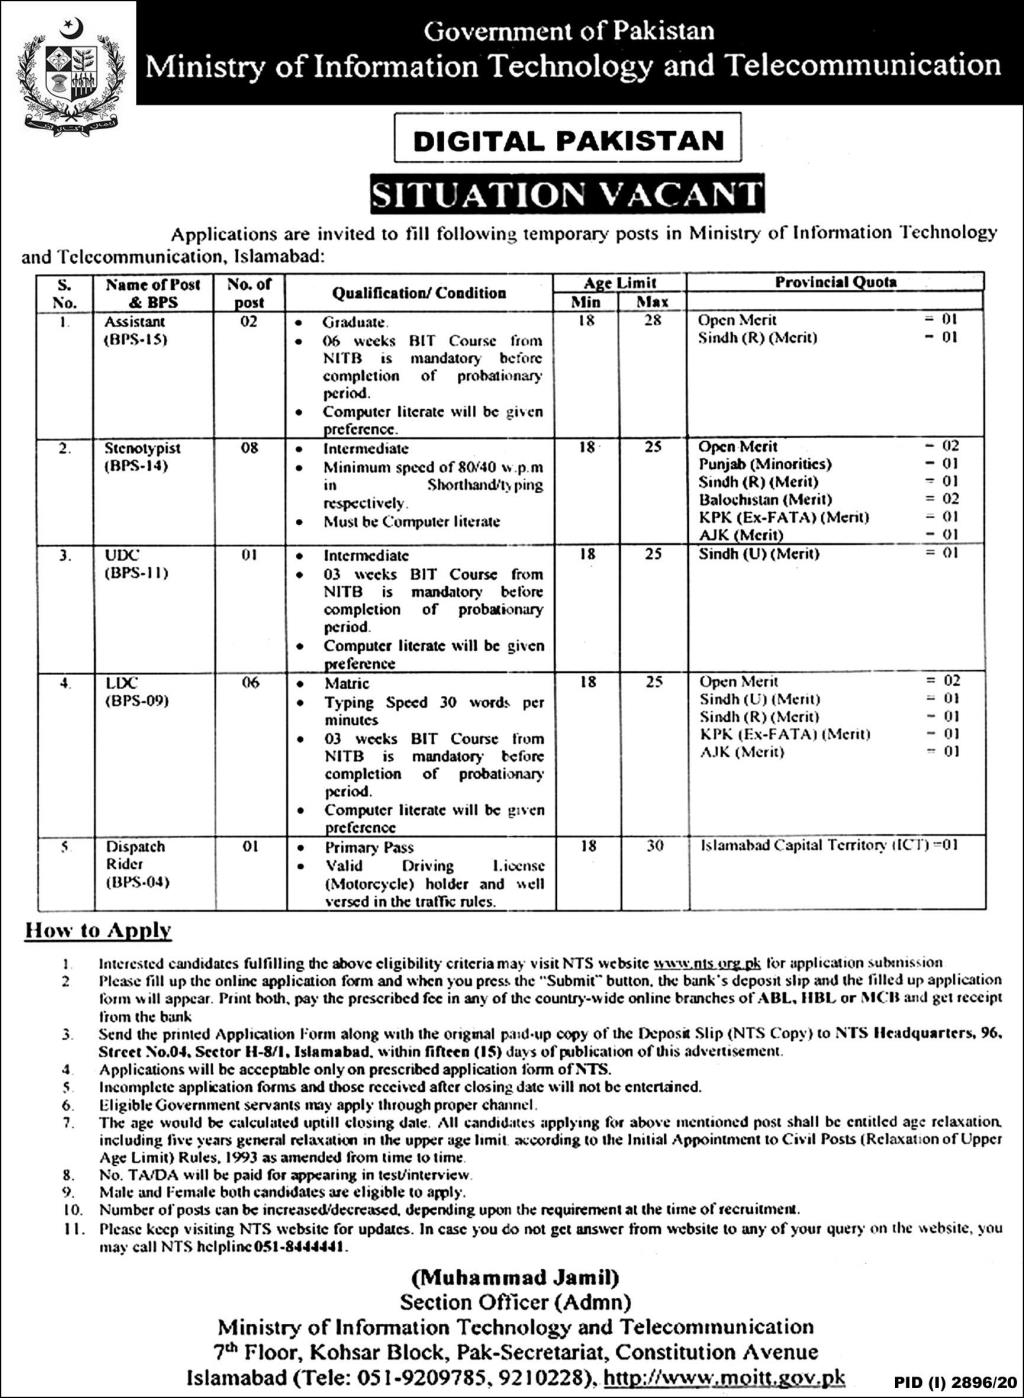 Ministry of Information Technology and Telecommunication Govt of Pakistan Jobs December 2020